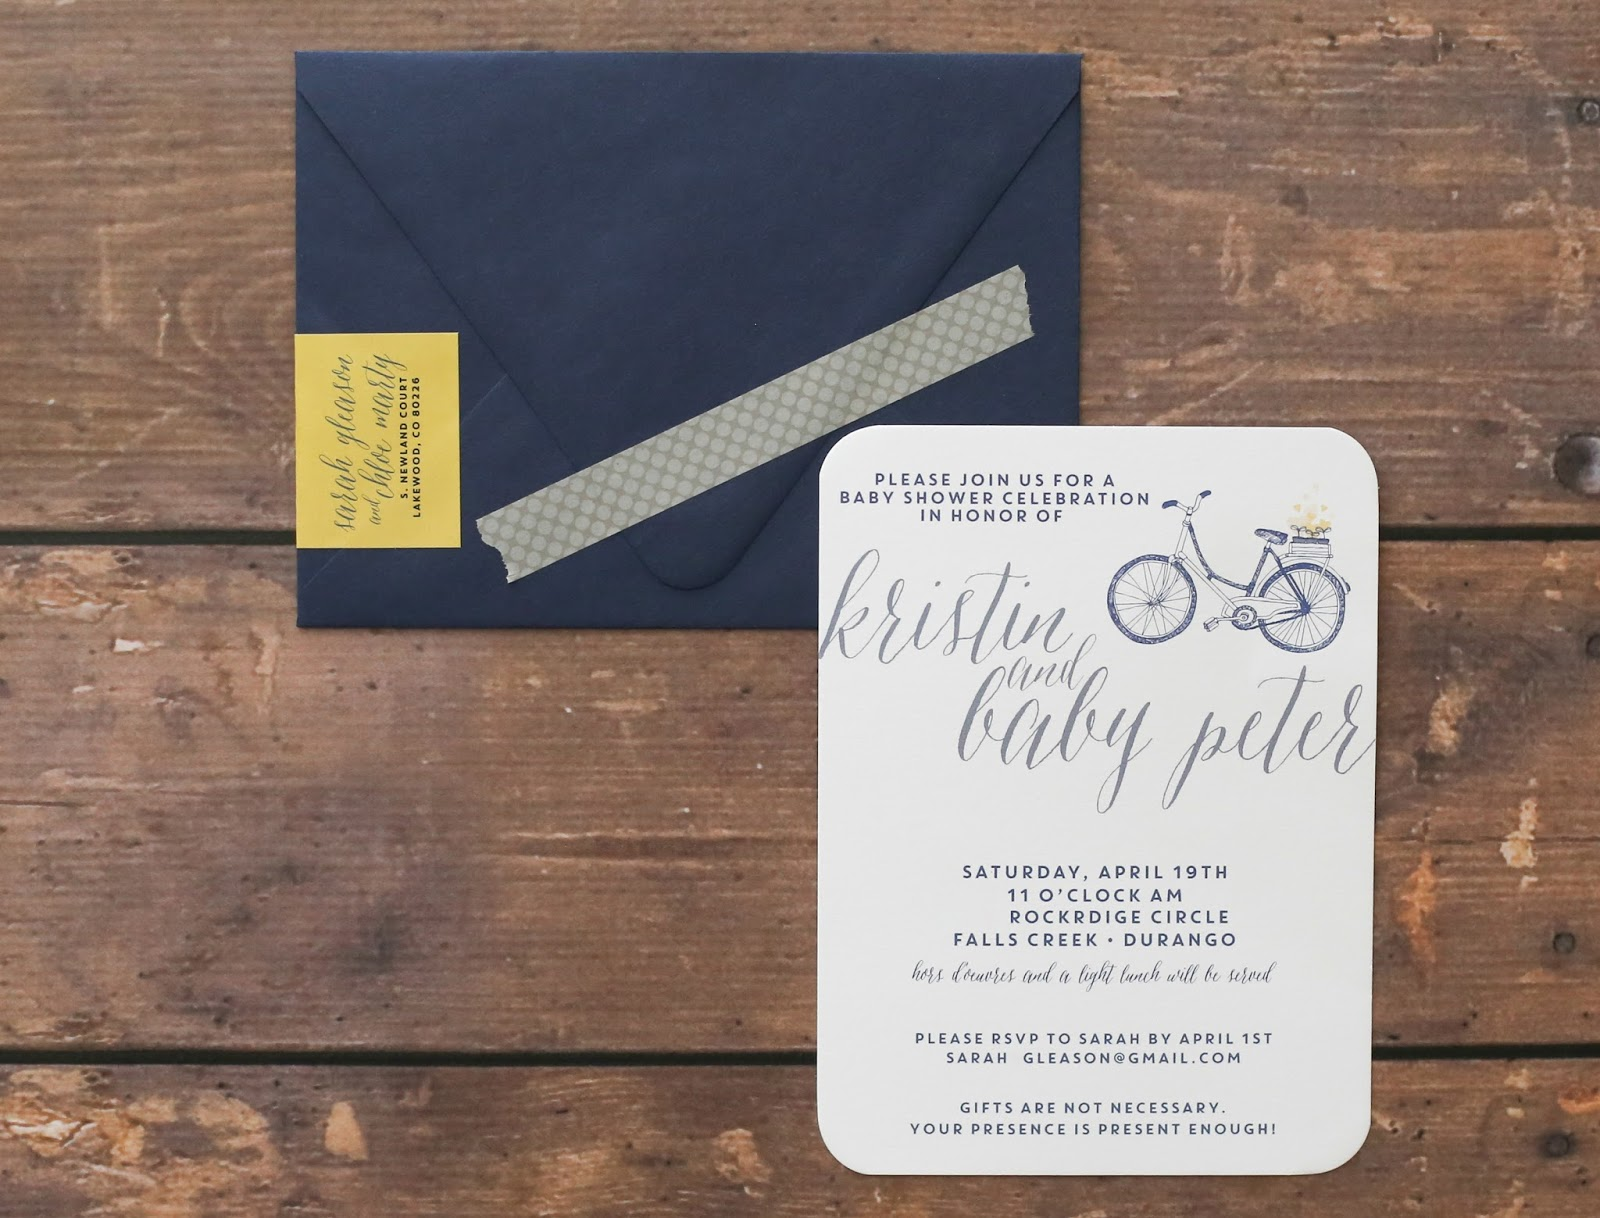 Chloe custom design bicycle baby shower invitations i am so excited to be going to durango we havent been since january and i am hoping for some lovely spring weather we will certainly catch up with lots filmwisefo